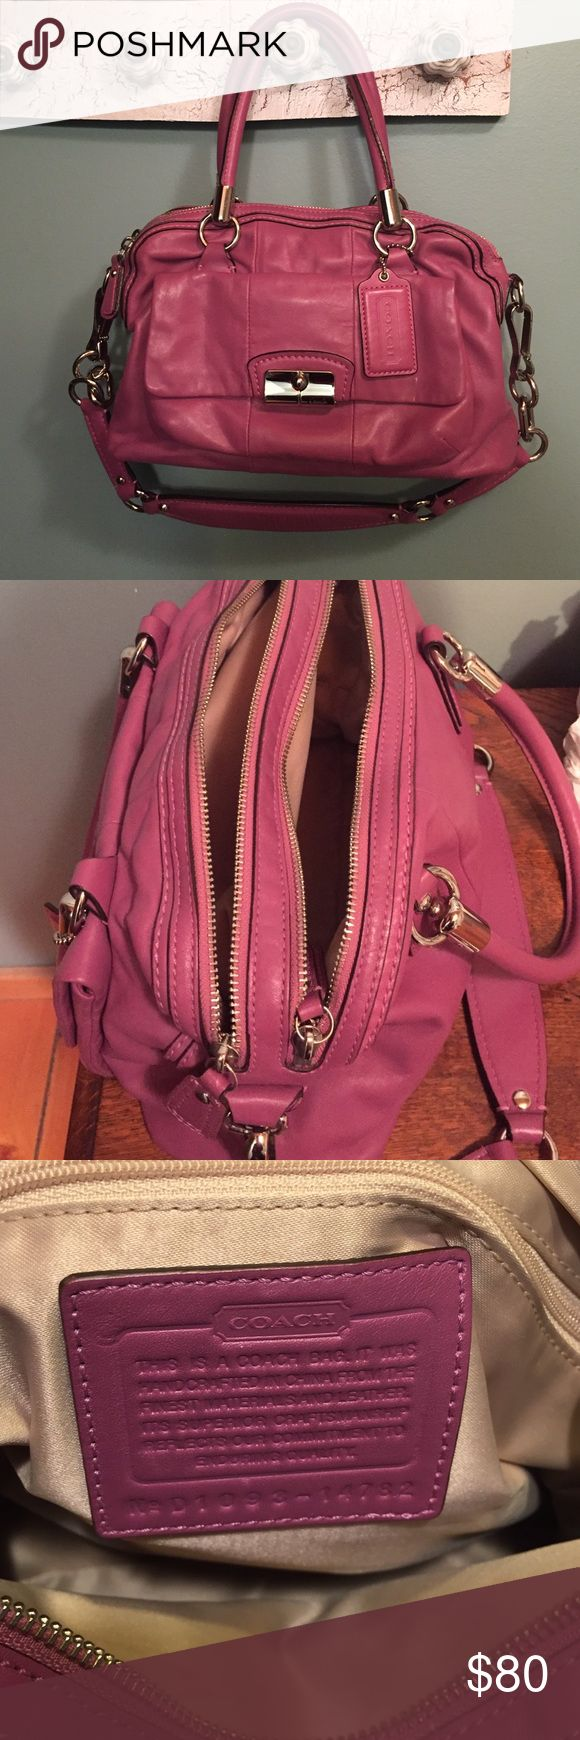 Coach purse Coach purse. Comes with original dust bag. Pink leather. Like new Coach Bags Satchels